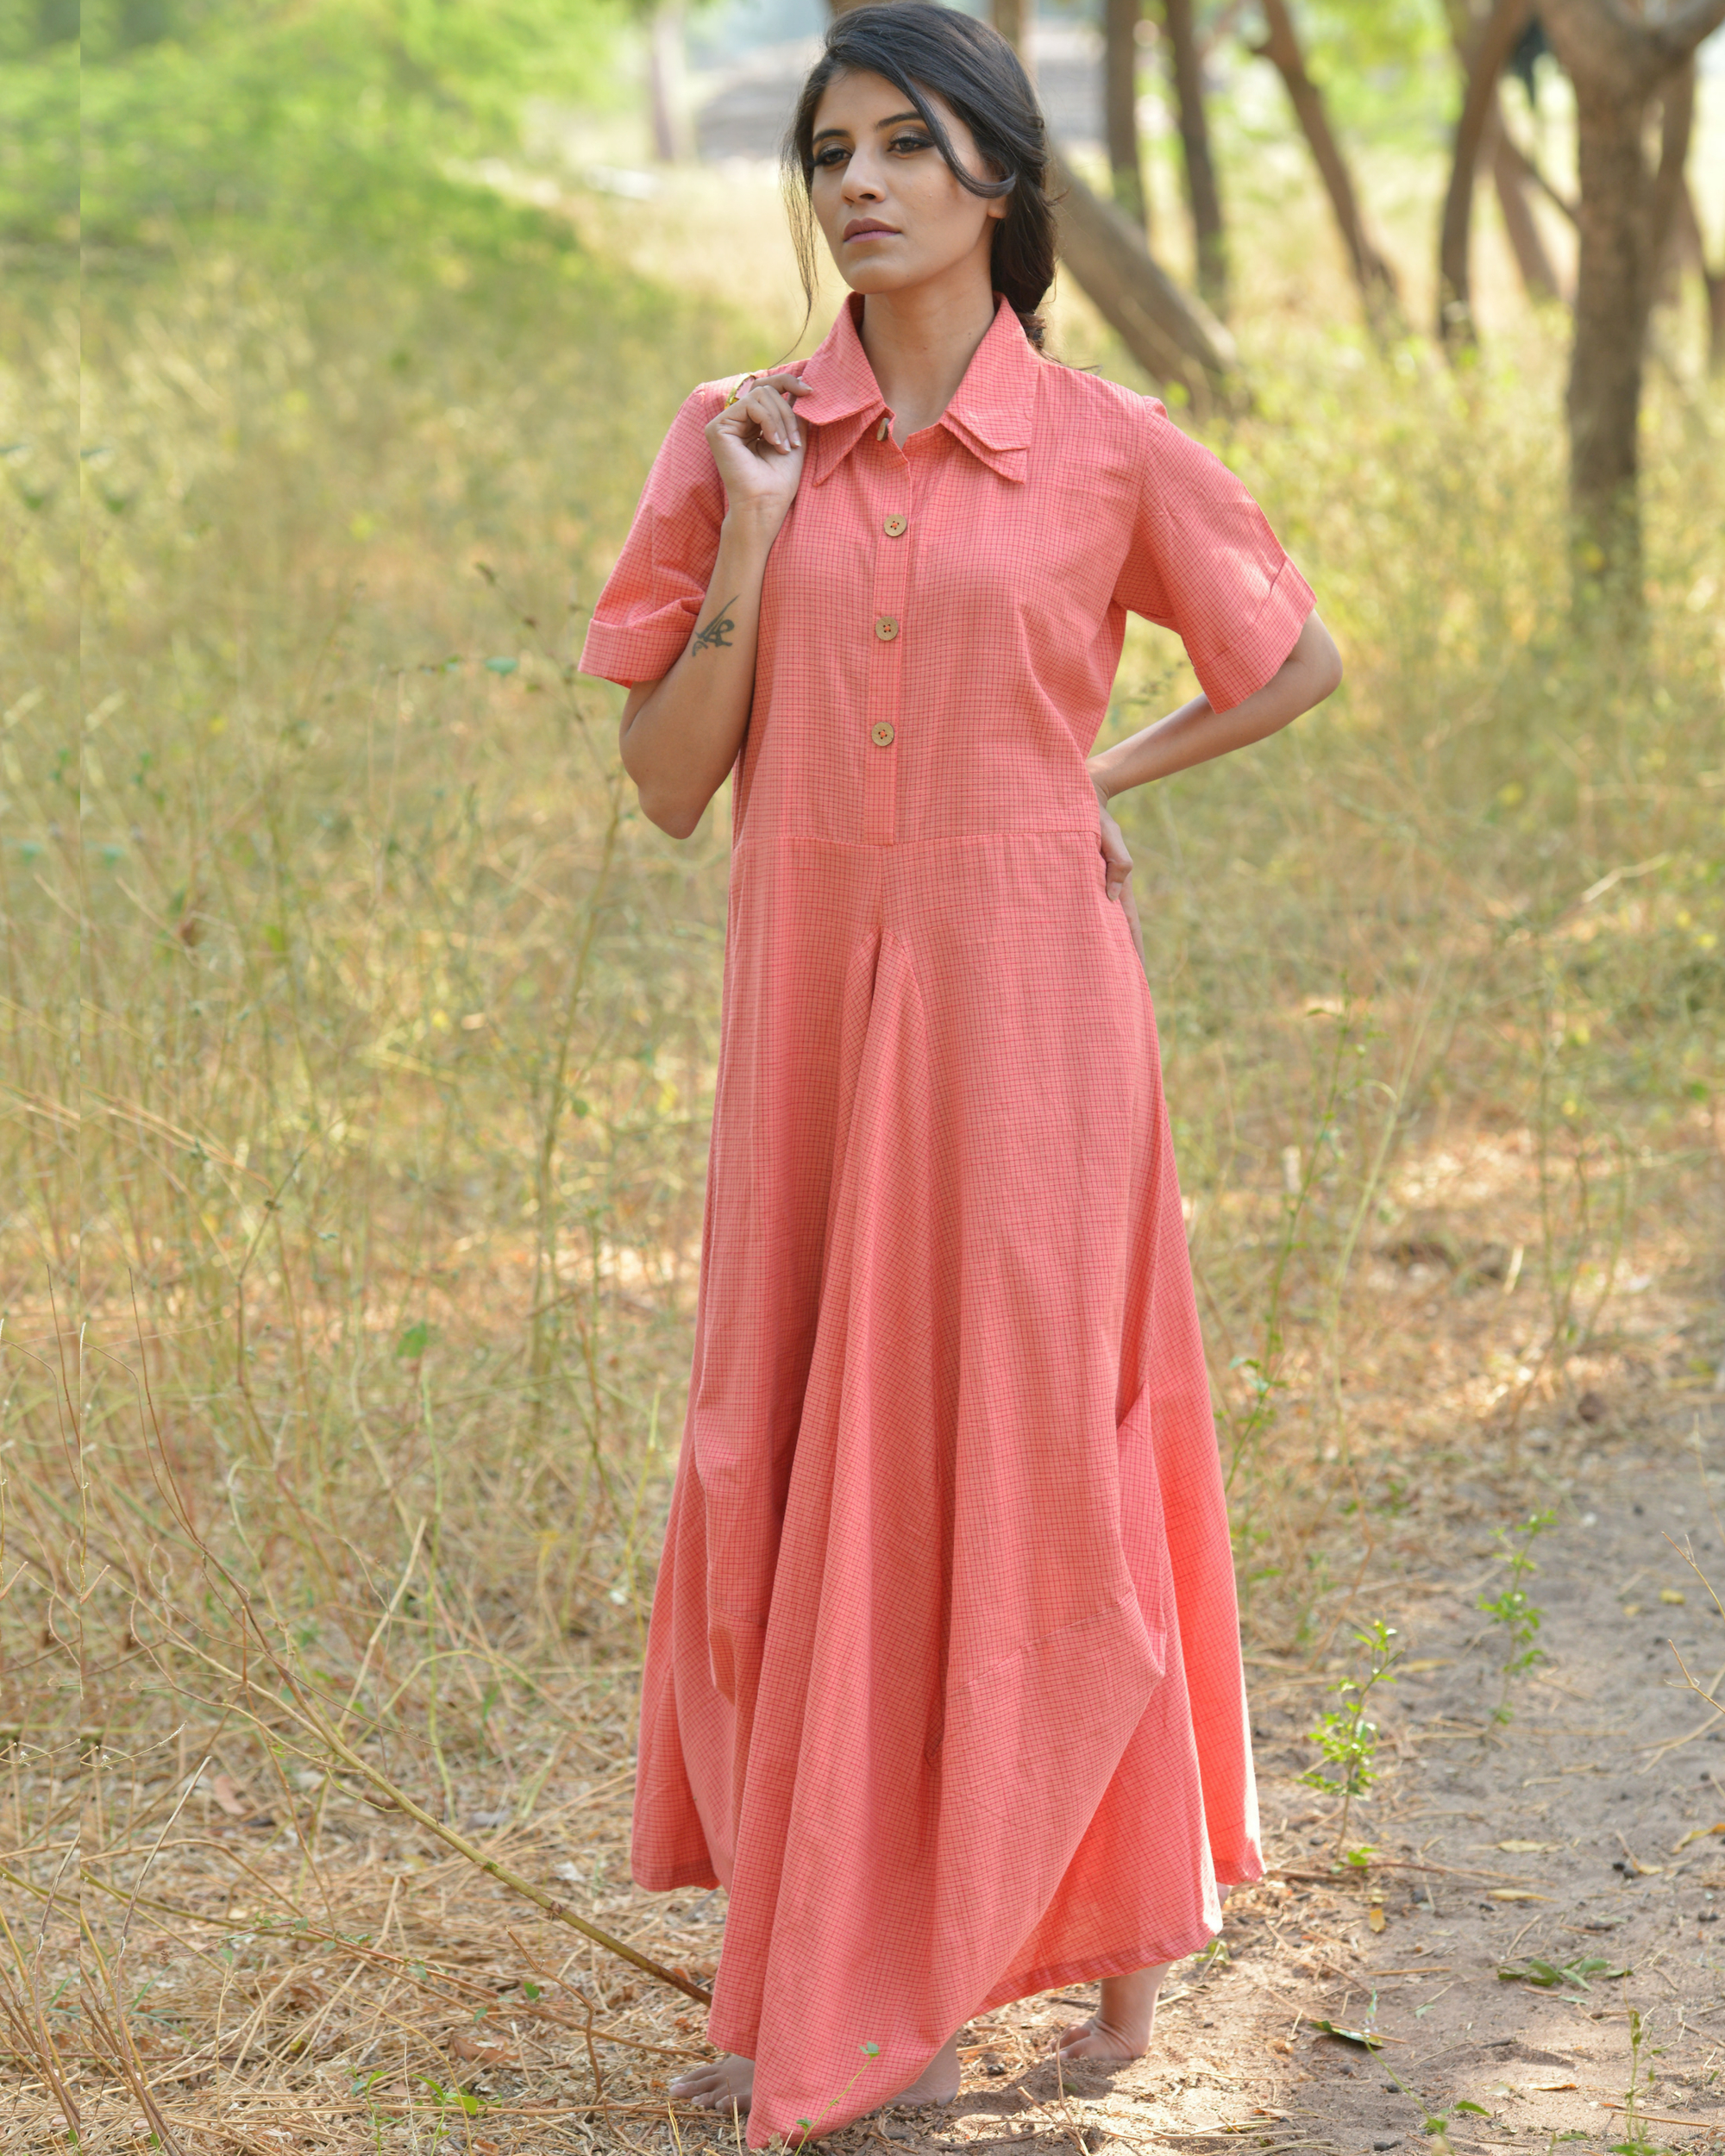 Blush peach khadi maxi dress